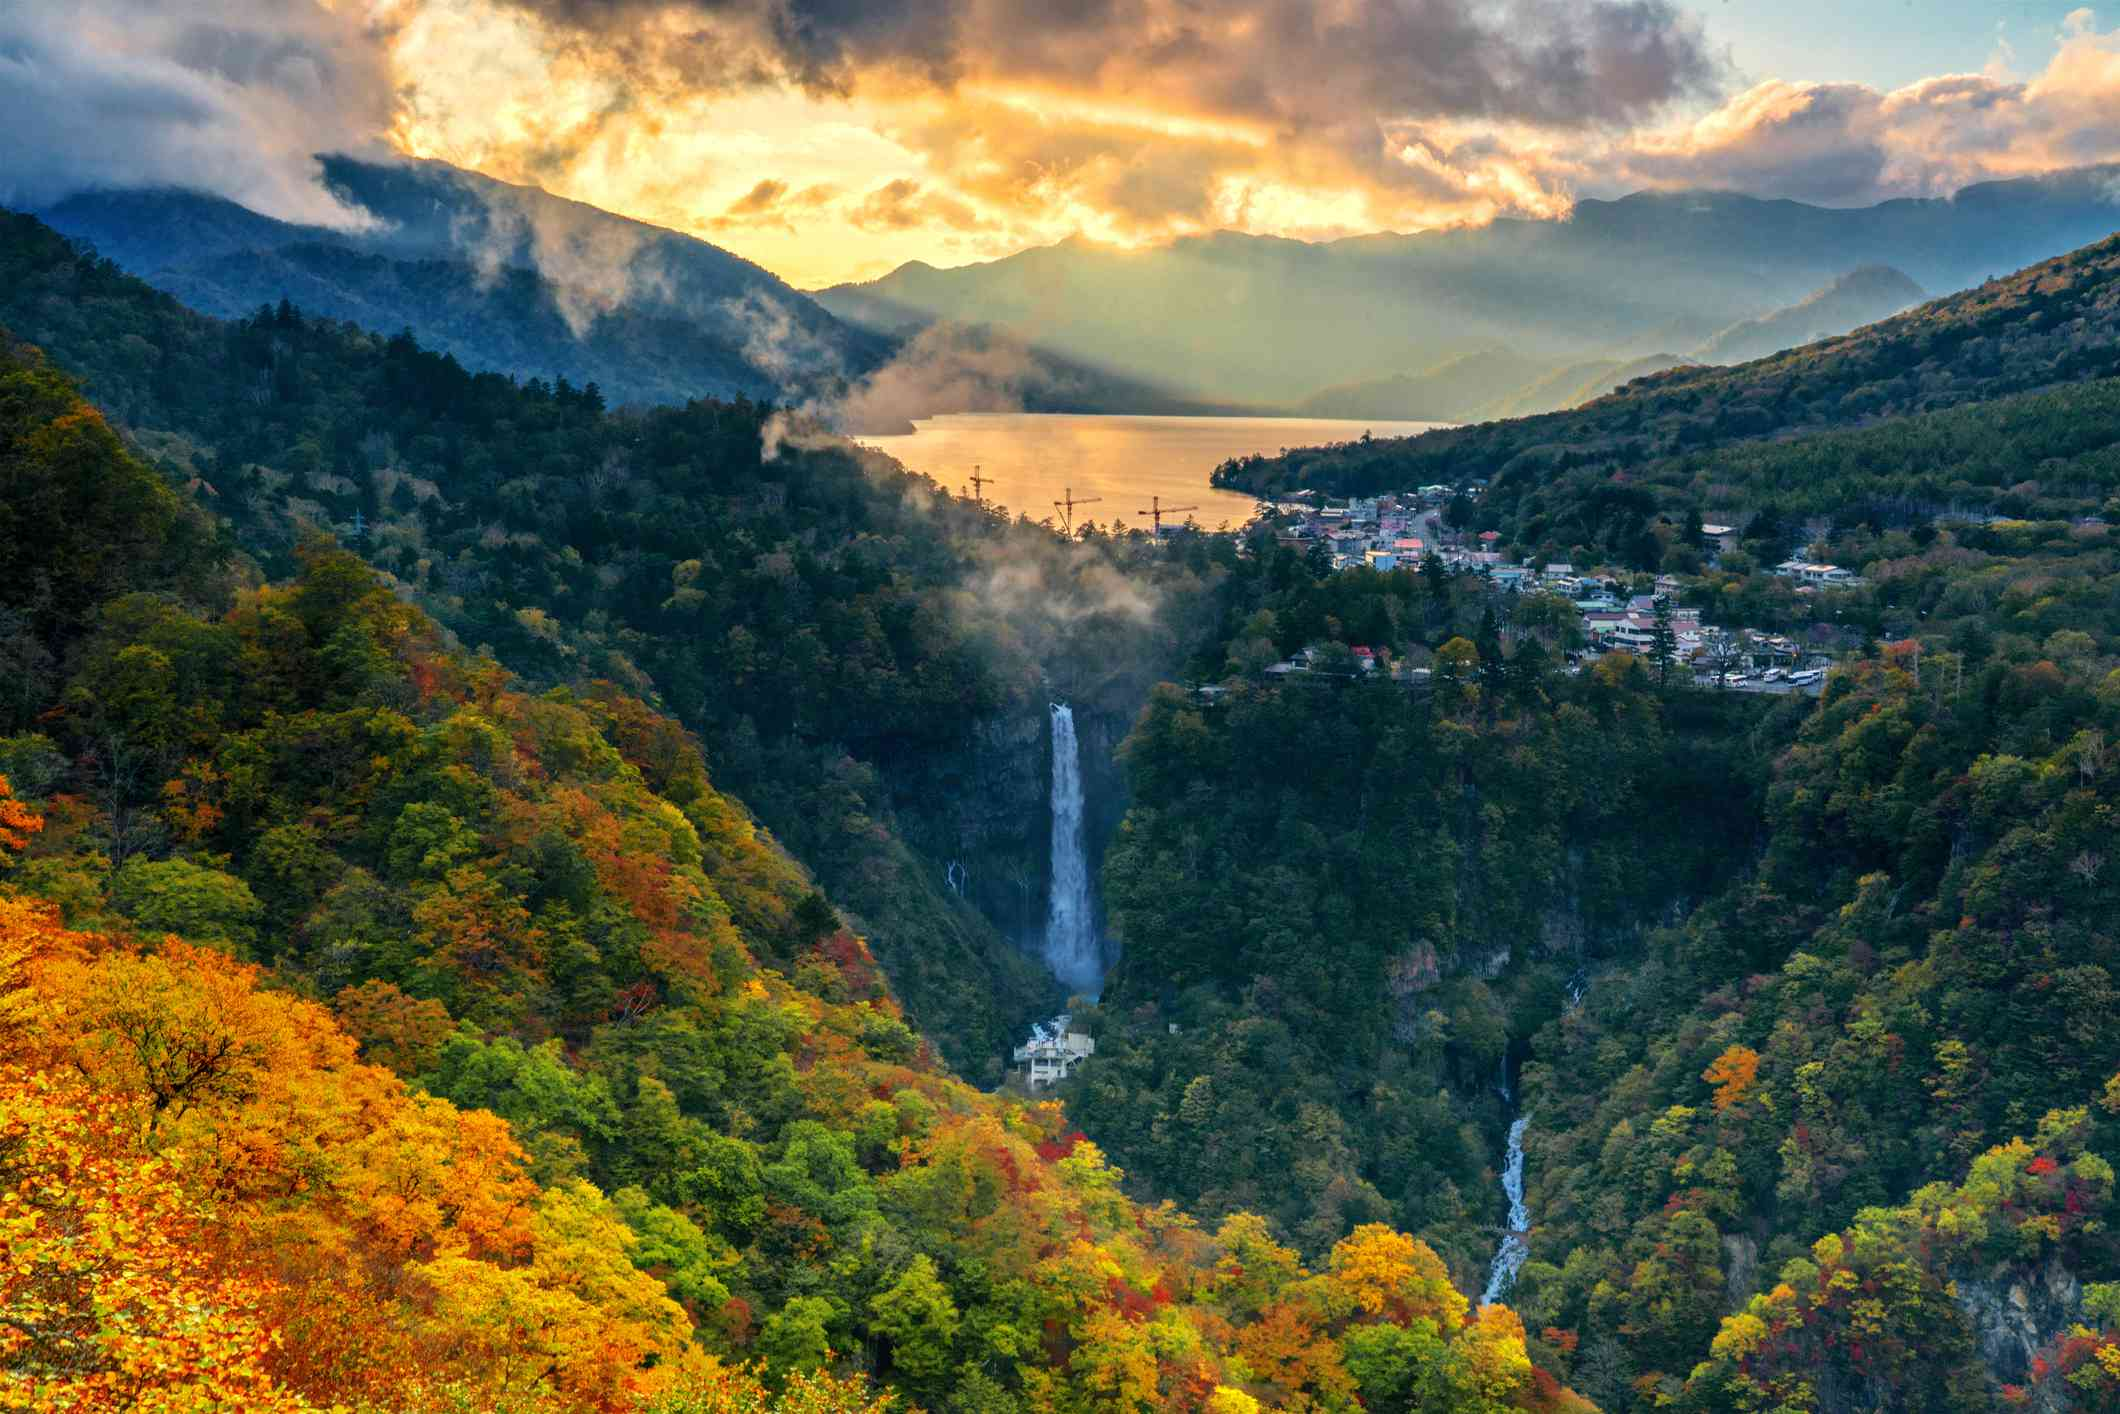 View from observatory area of Nikko shown the overall panoramic perspective of Nikko National Park with famous falls and lake Chuzenji during autumn season